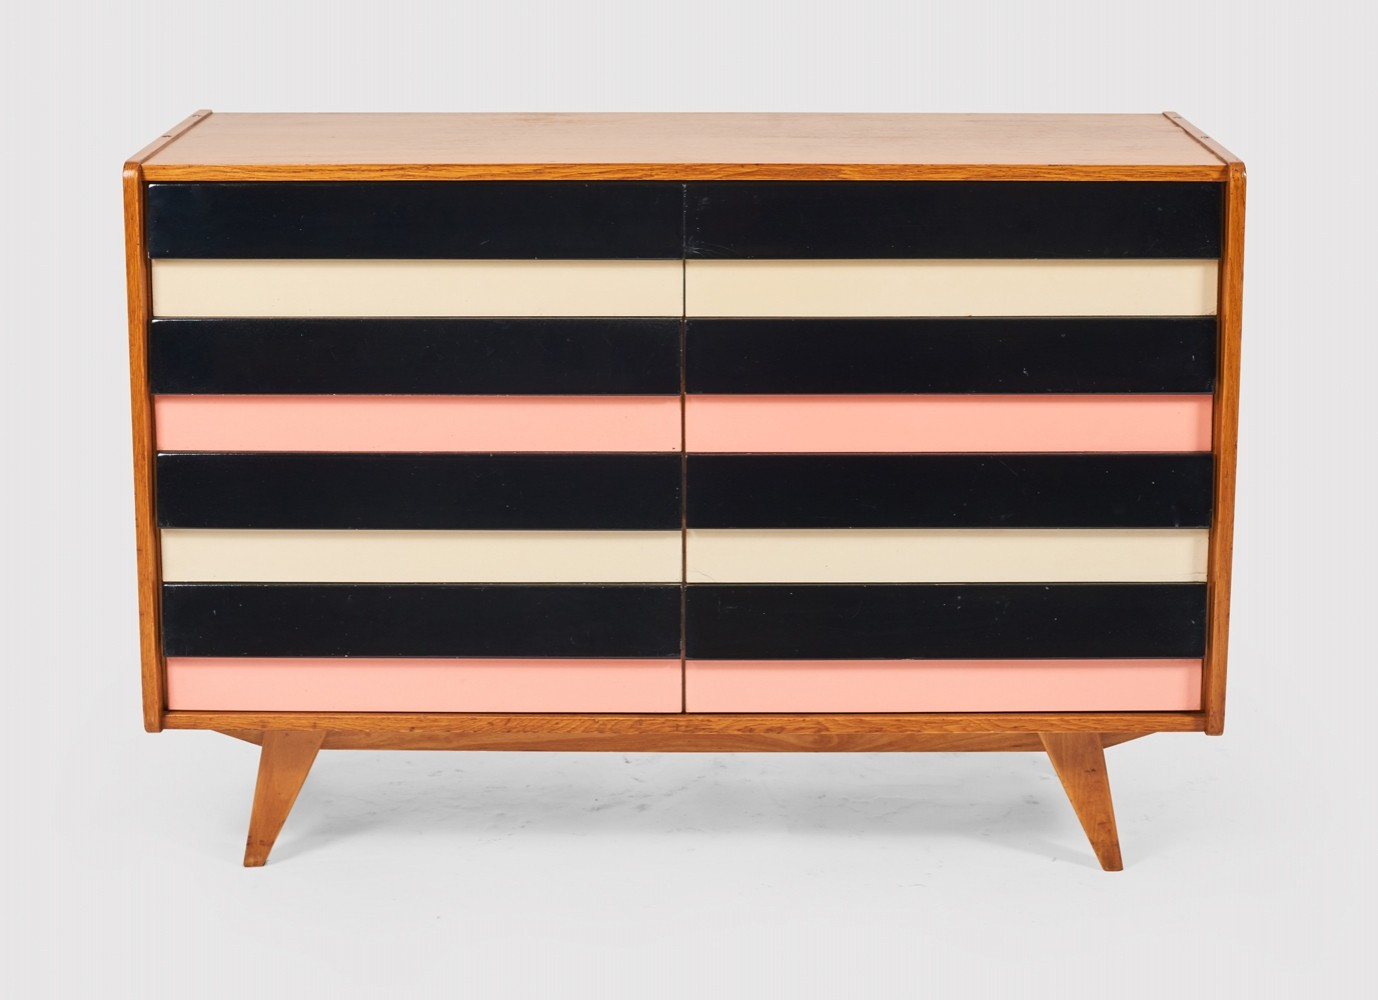 Wooden chest of drawers by Jiří Jiroutek for Interier Praha, 60s